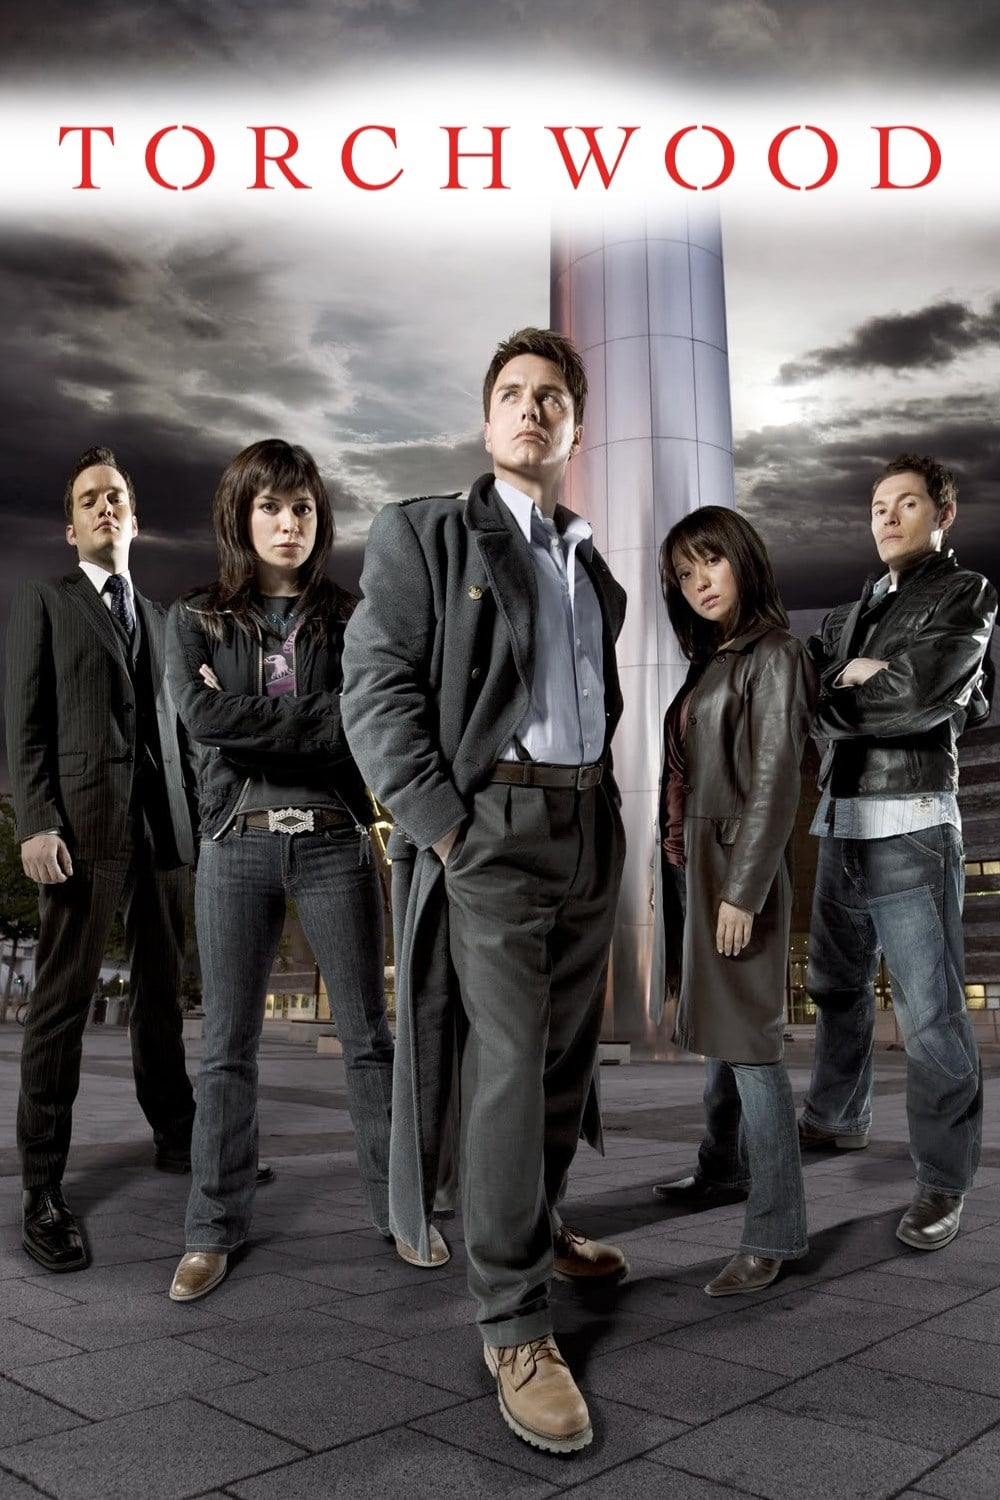 Torchwood Season 1